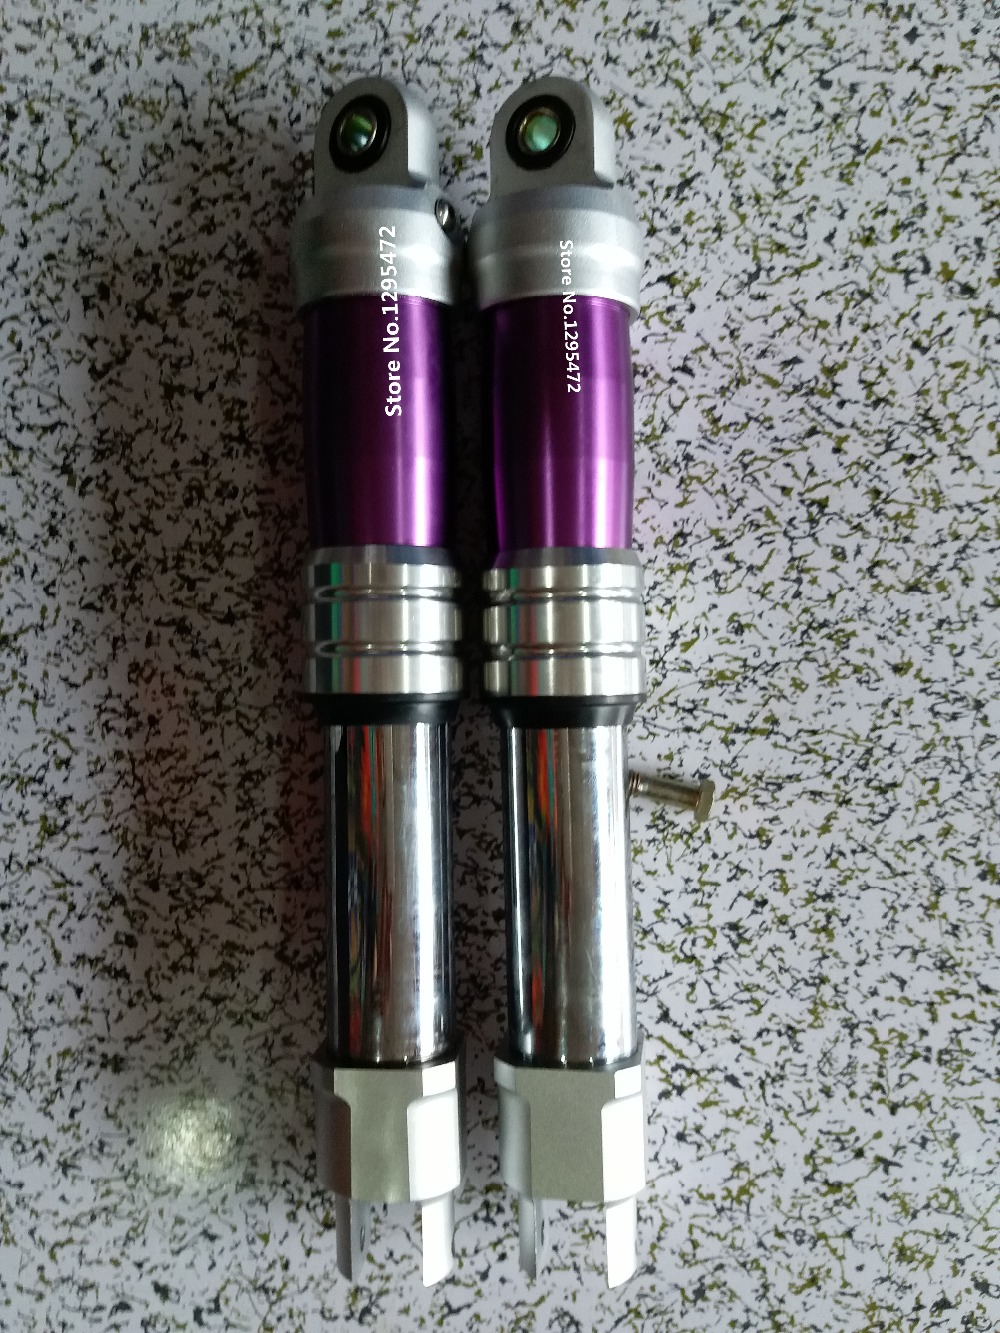 new 280mm  eye to eye  1 Pair  clevis  Rear Shock Absormotorcycle   for Honda Yamaha suzuki kawasaki  Scooter new 13 5 340mm motorcycle a pair air shocks absorber eye to eye gokart purple